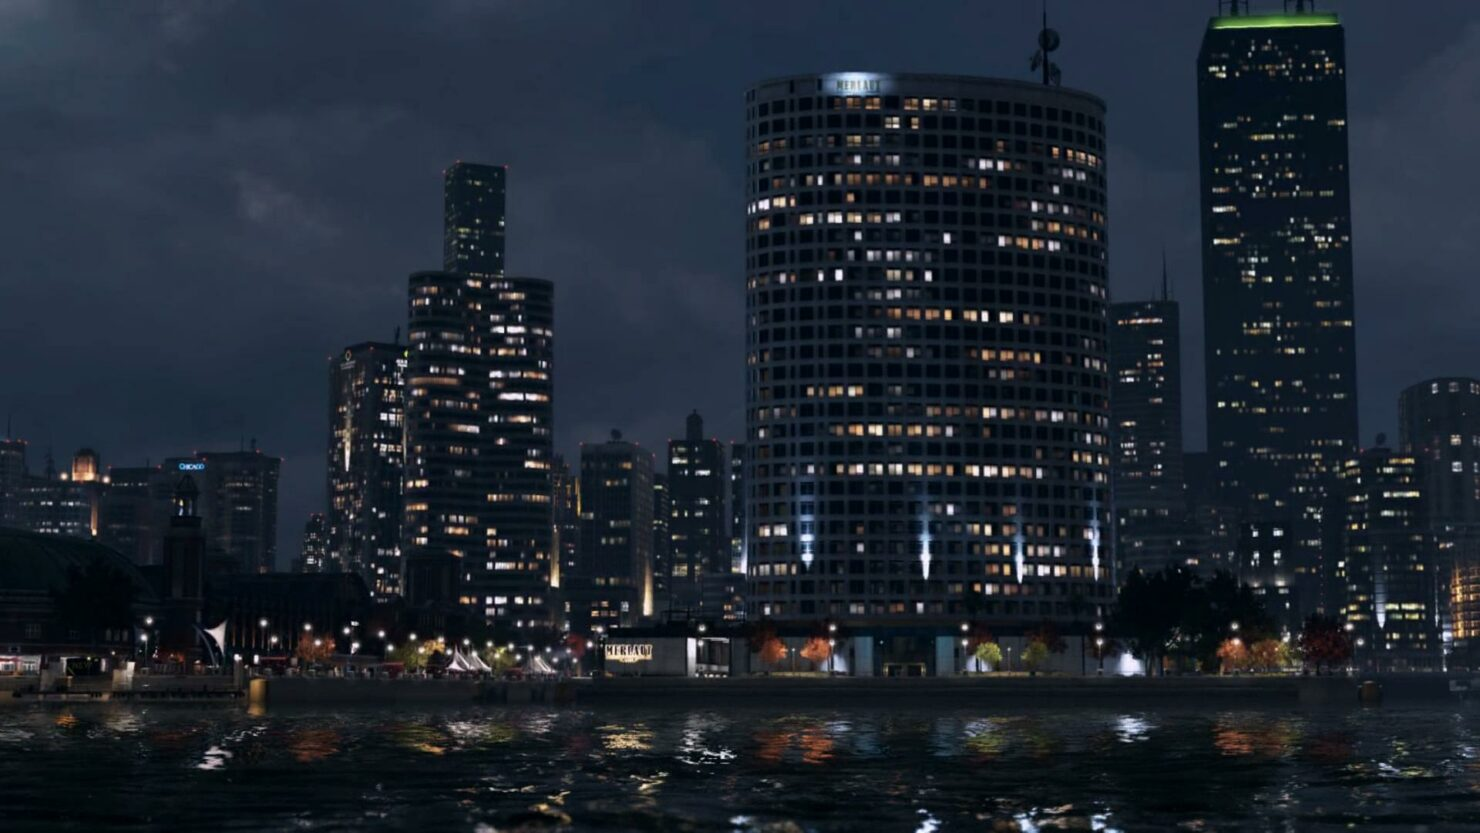 watch_dogs-2014-05-24-10-30-21-06